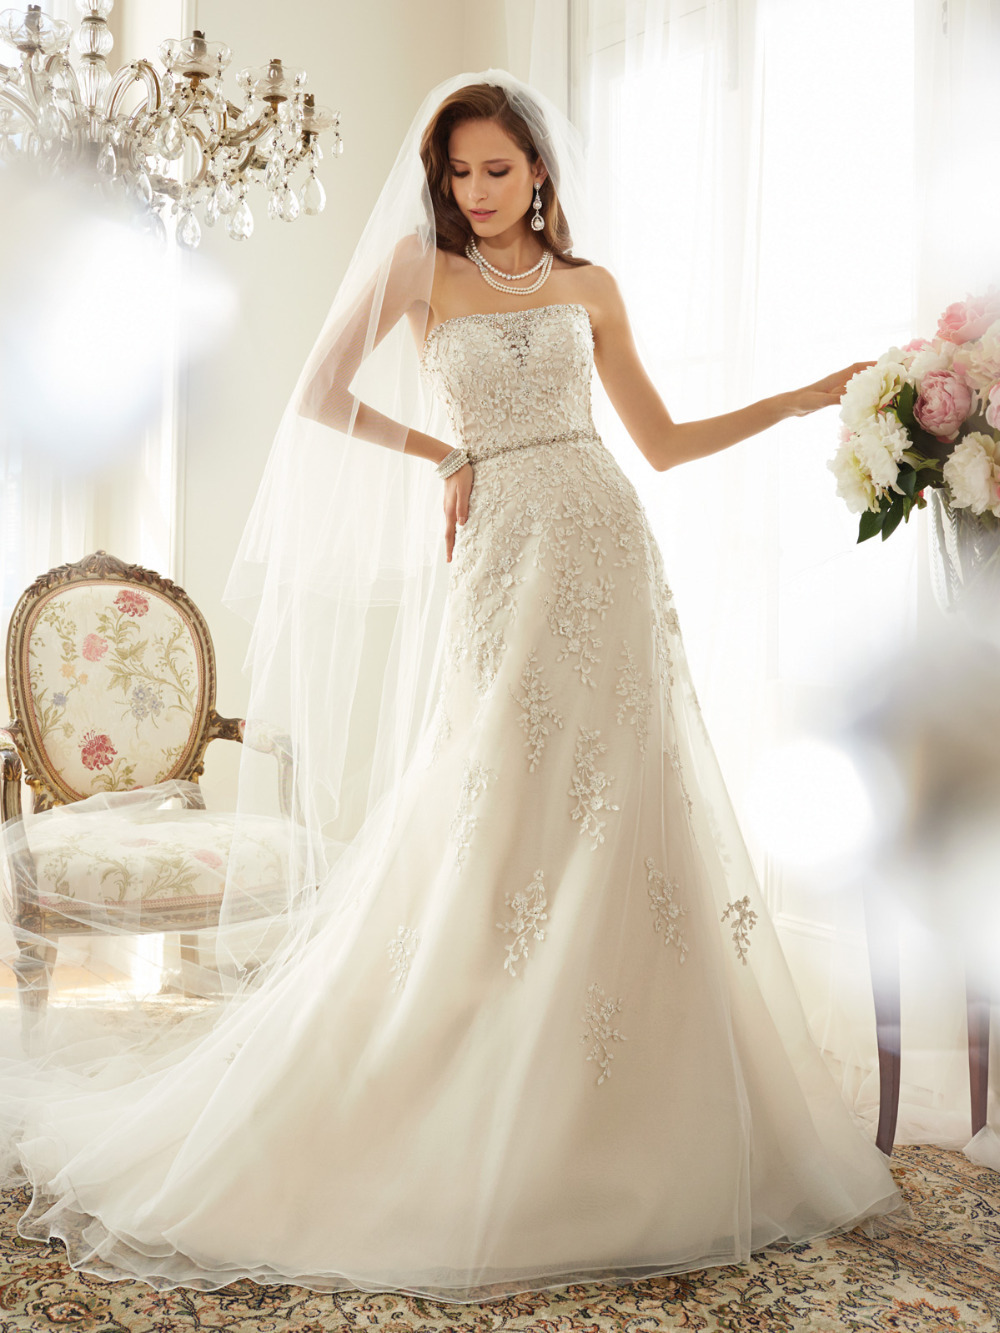 High Fashion Civil Wedding Dresses 2015 Strapless Lace ...